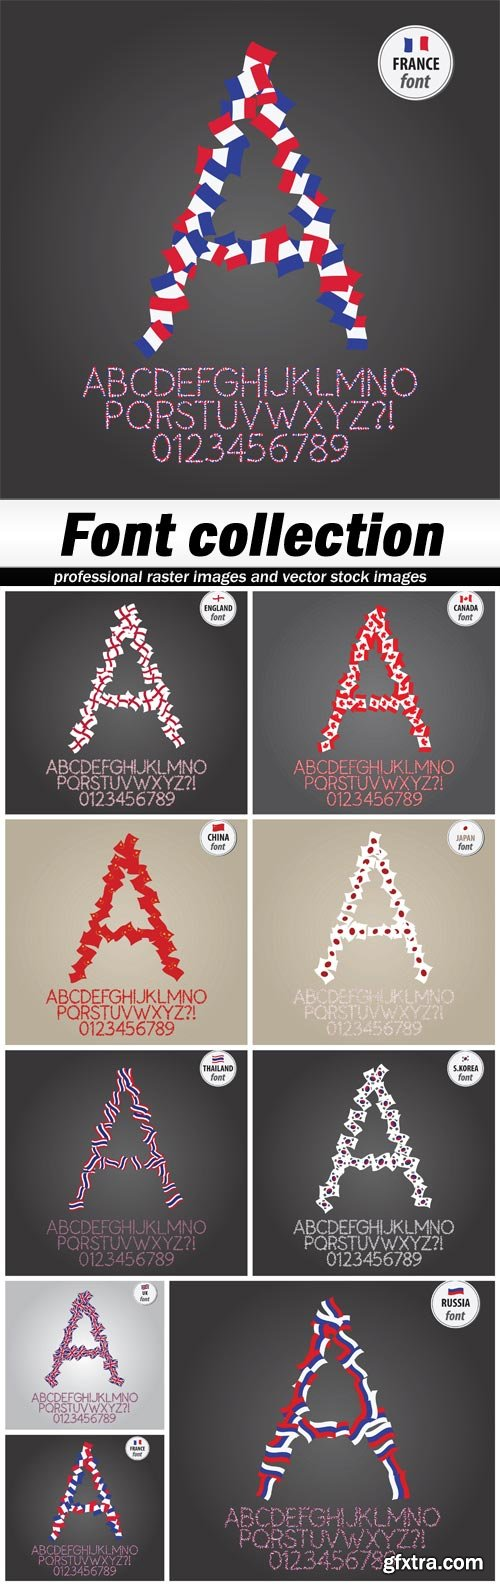 Font collection - 9 EPS